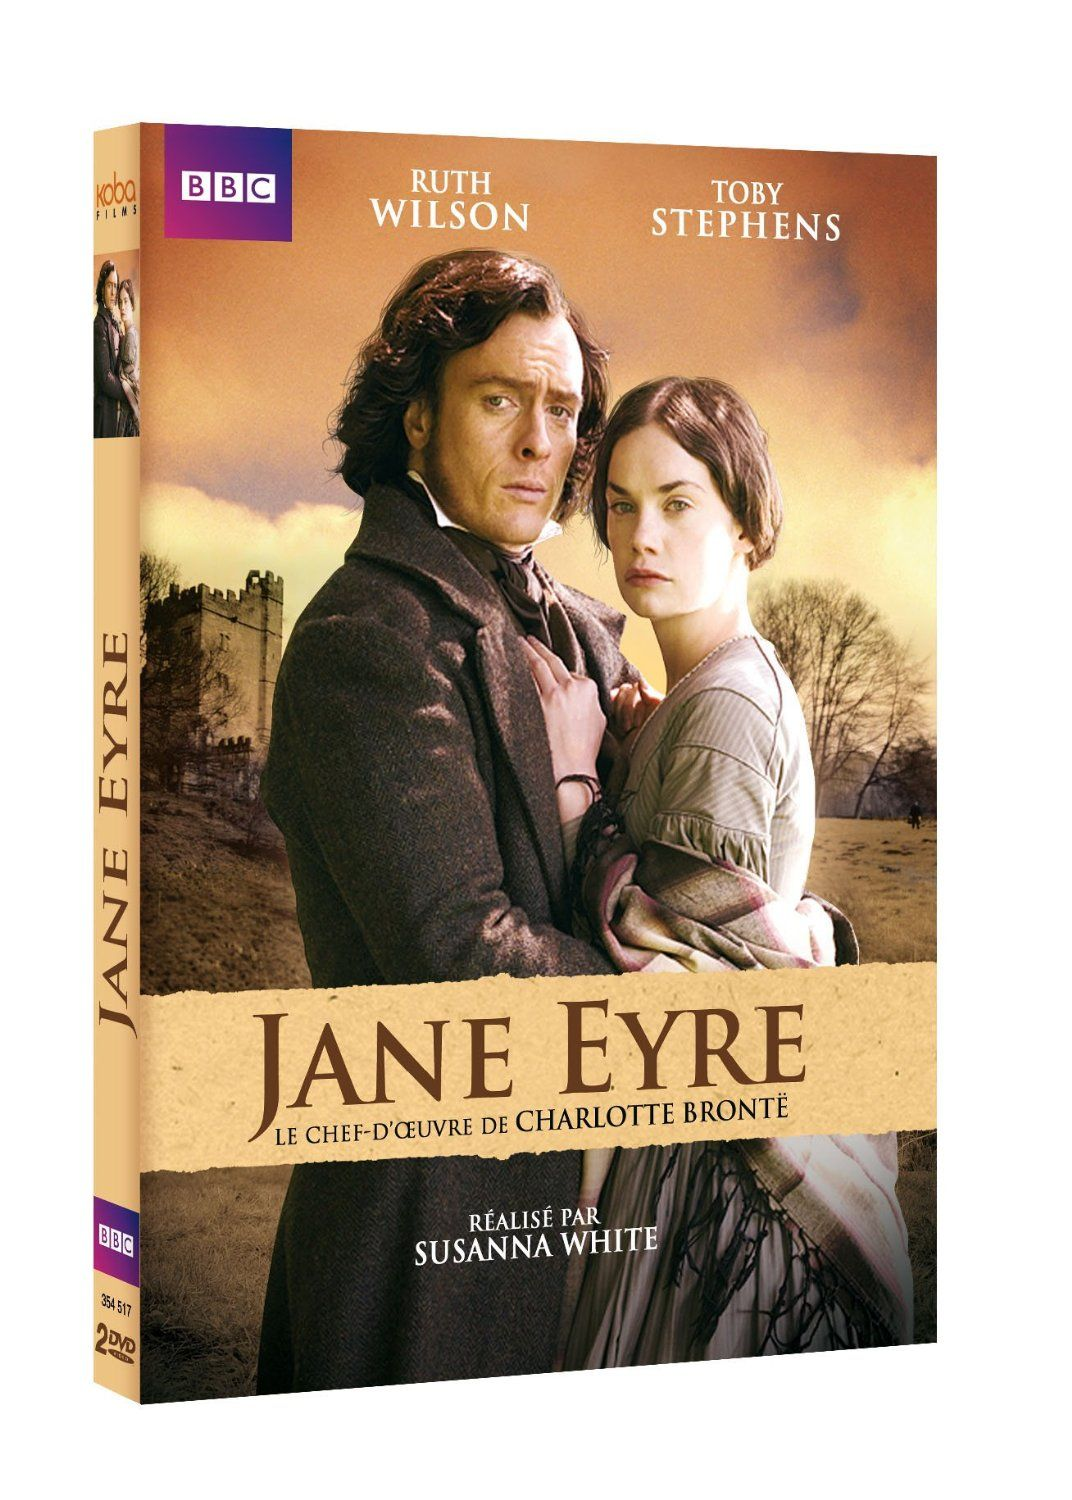 Pin By Elly Brugman On The Great Toby Jane Eyre 2006 Jane Eyre Eyre